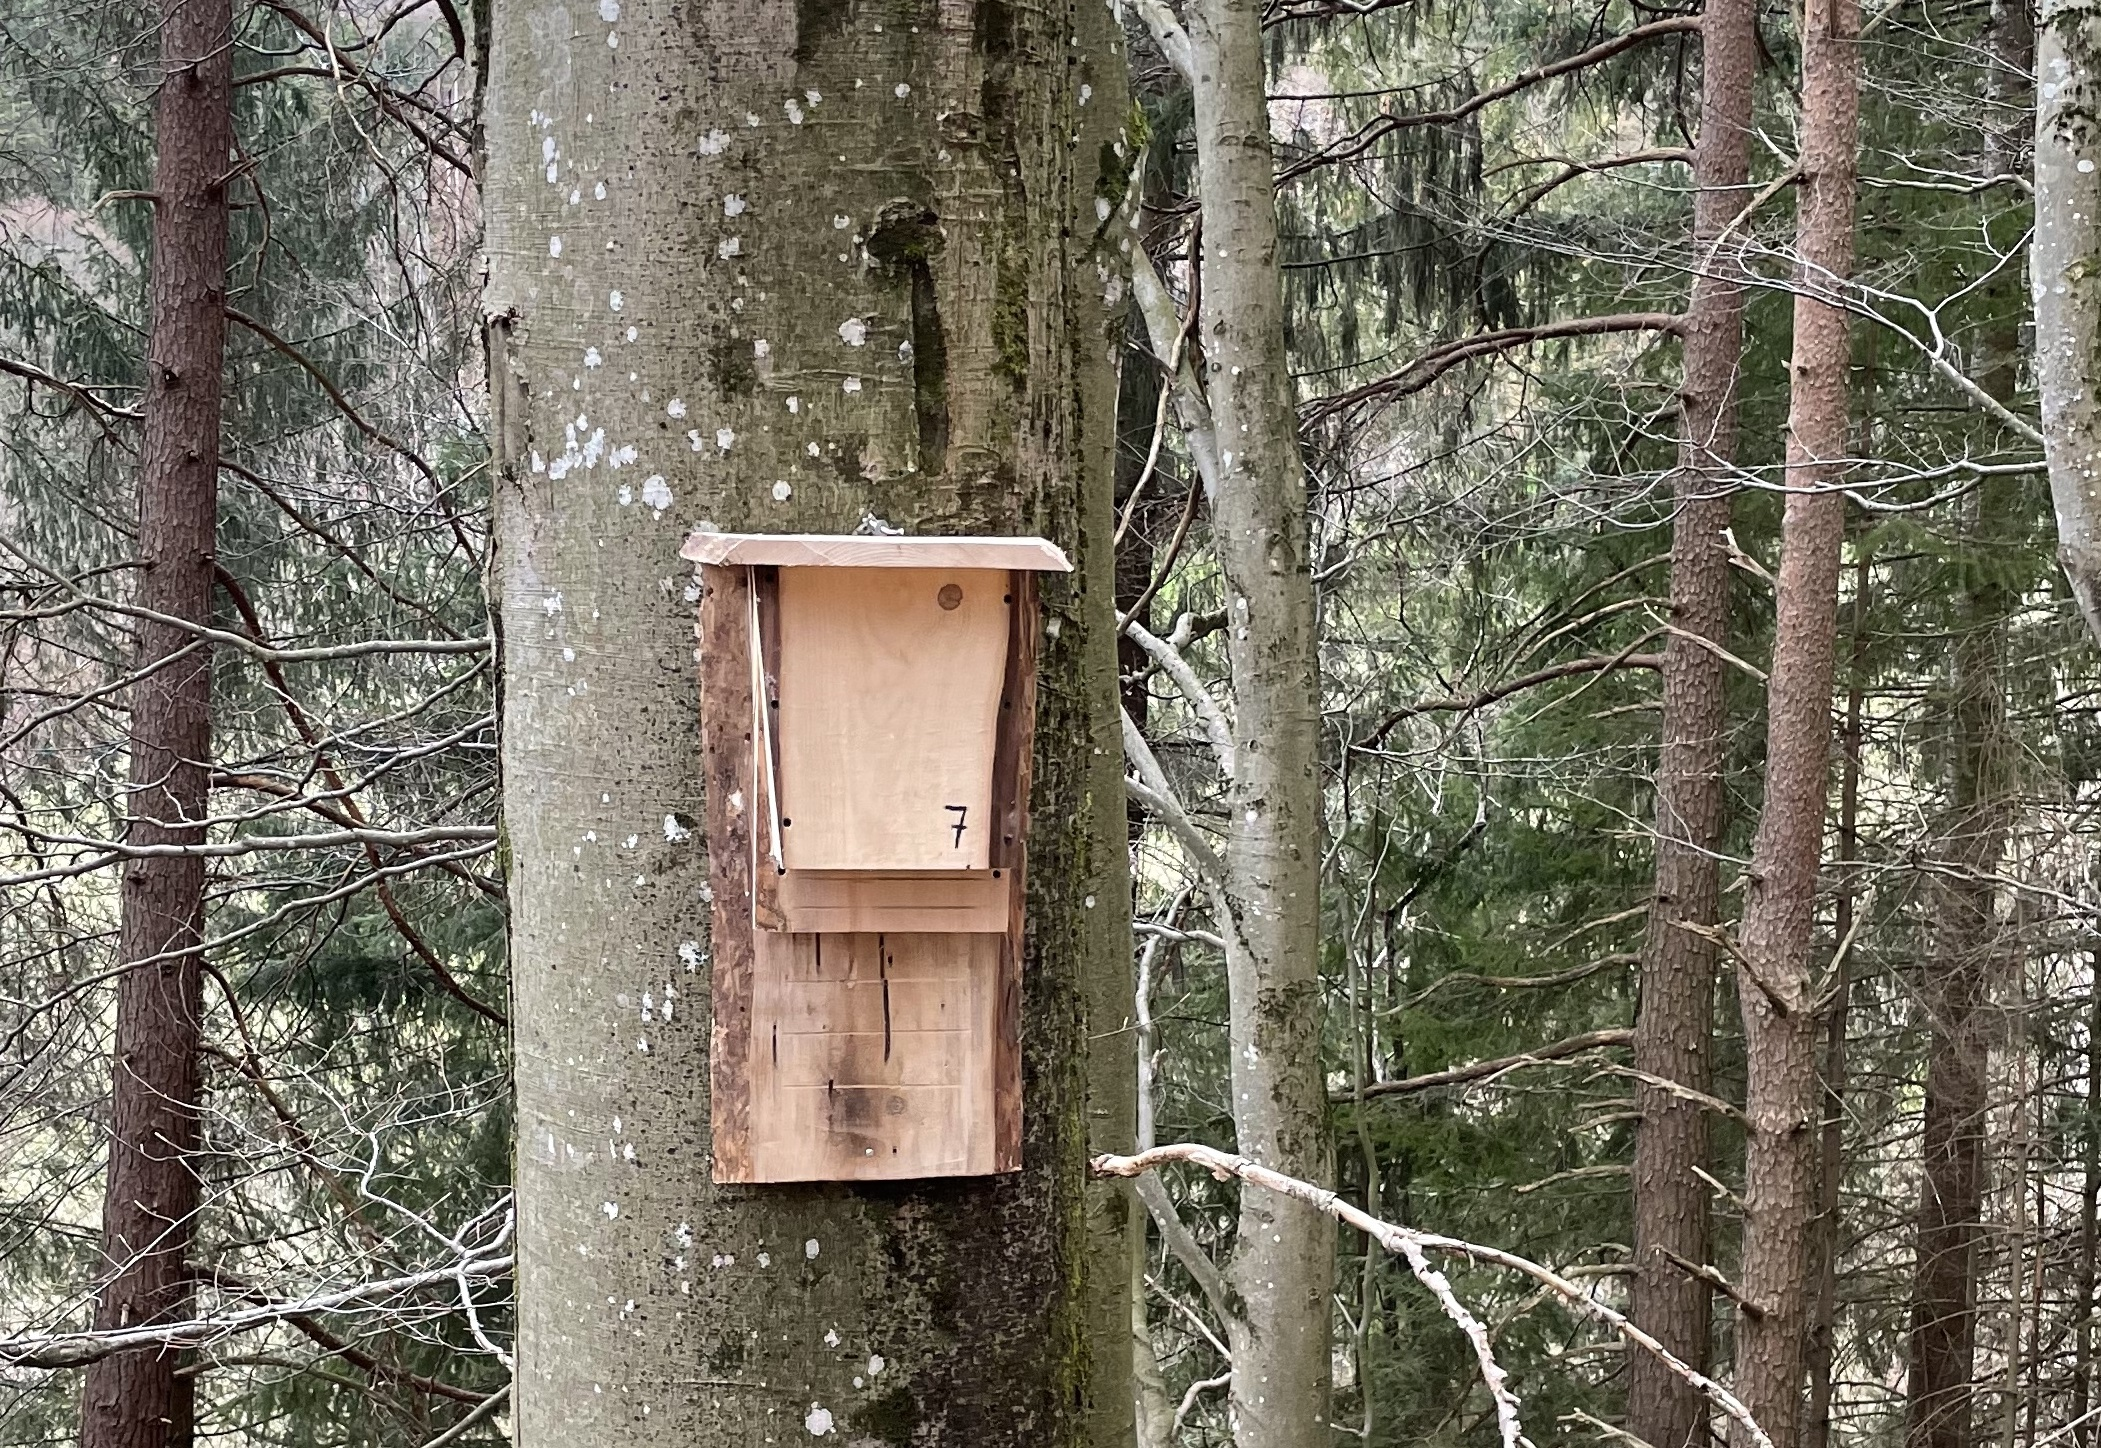 Guide for foresters on bat protection in the forest